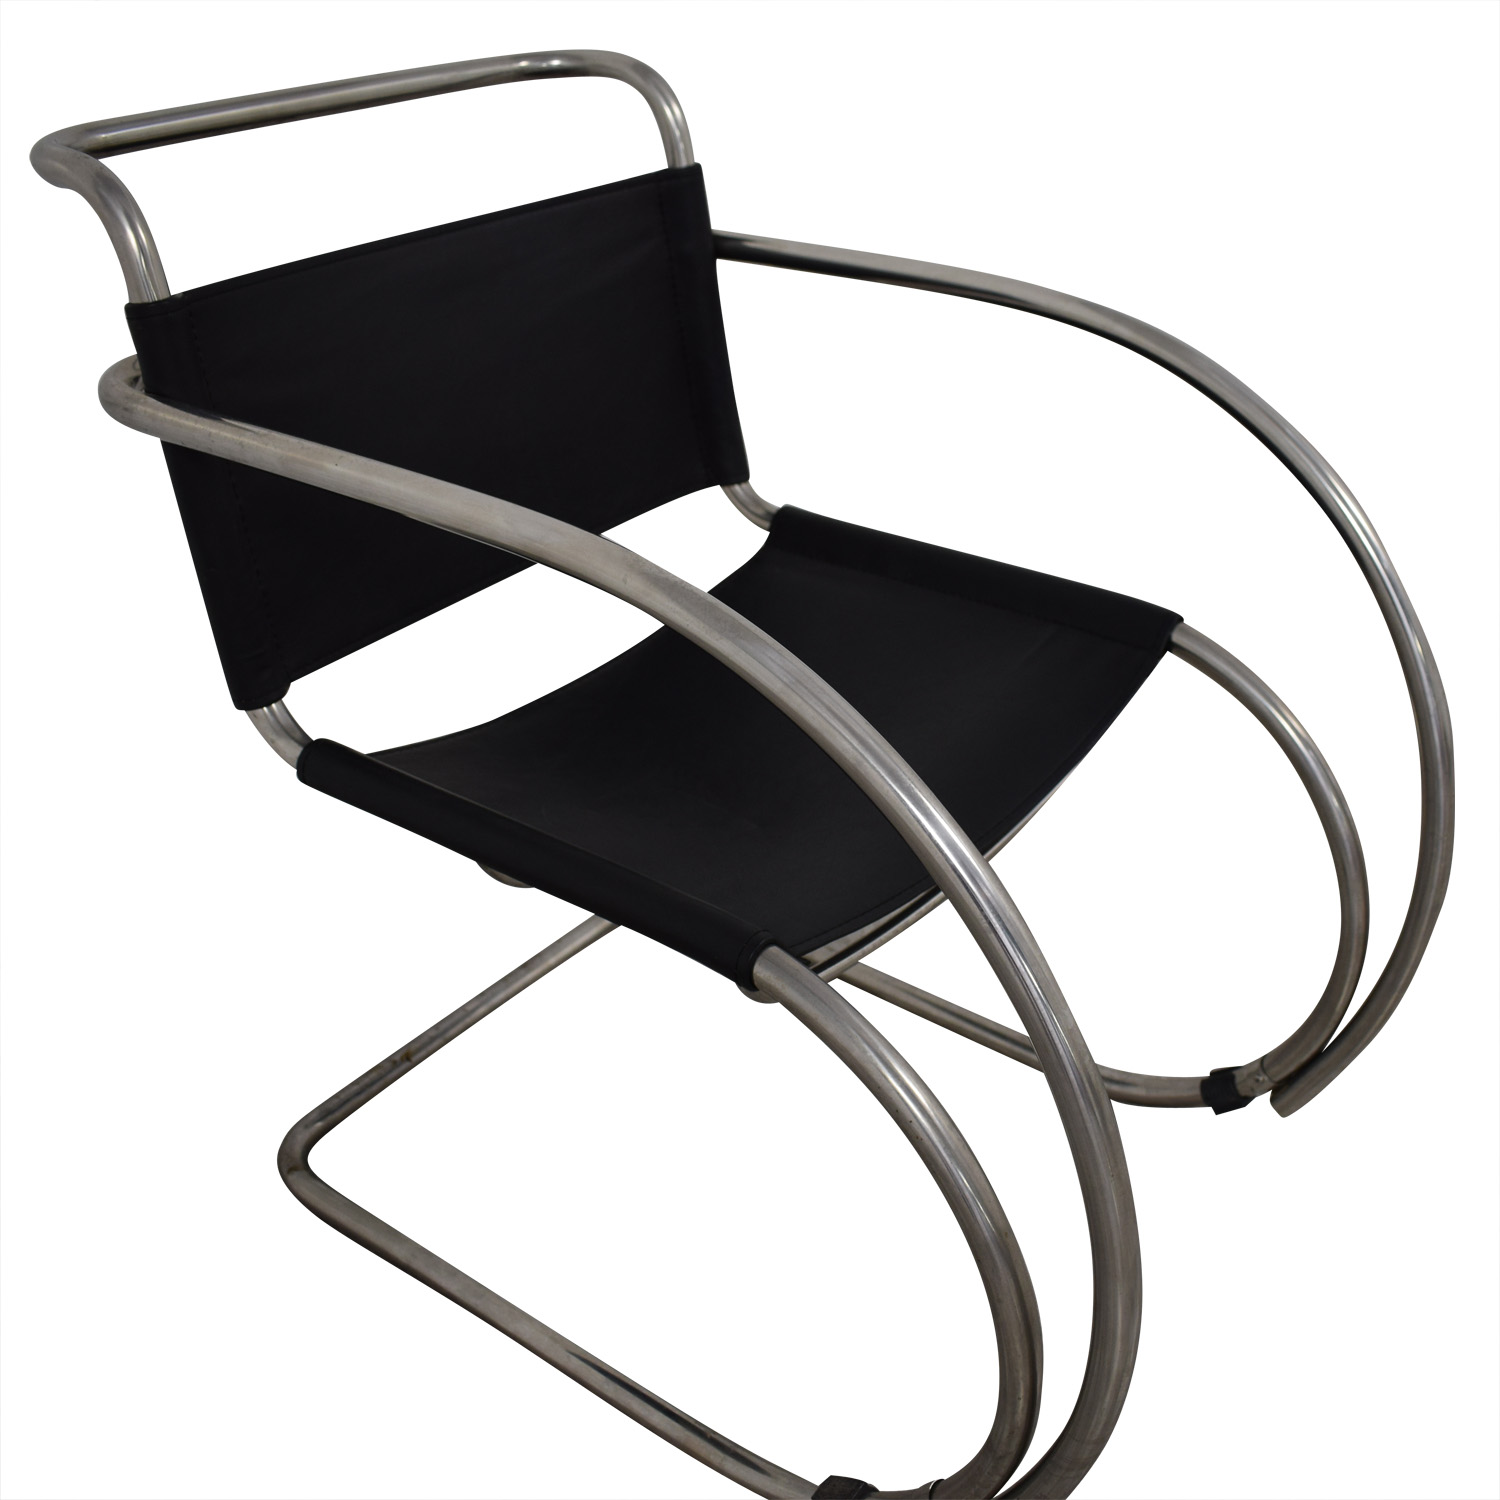 Charmant 83% OFF   Restoration Hardware Restoration Hardware Cantilevered Armchair /  Chairs